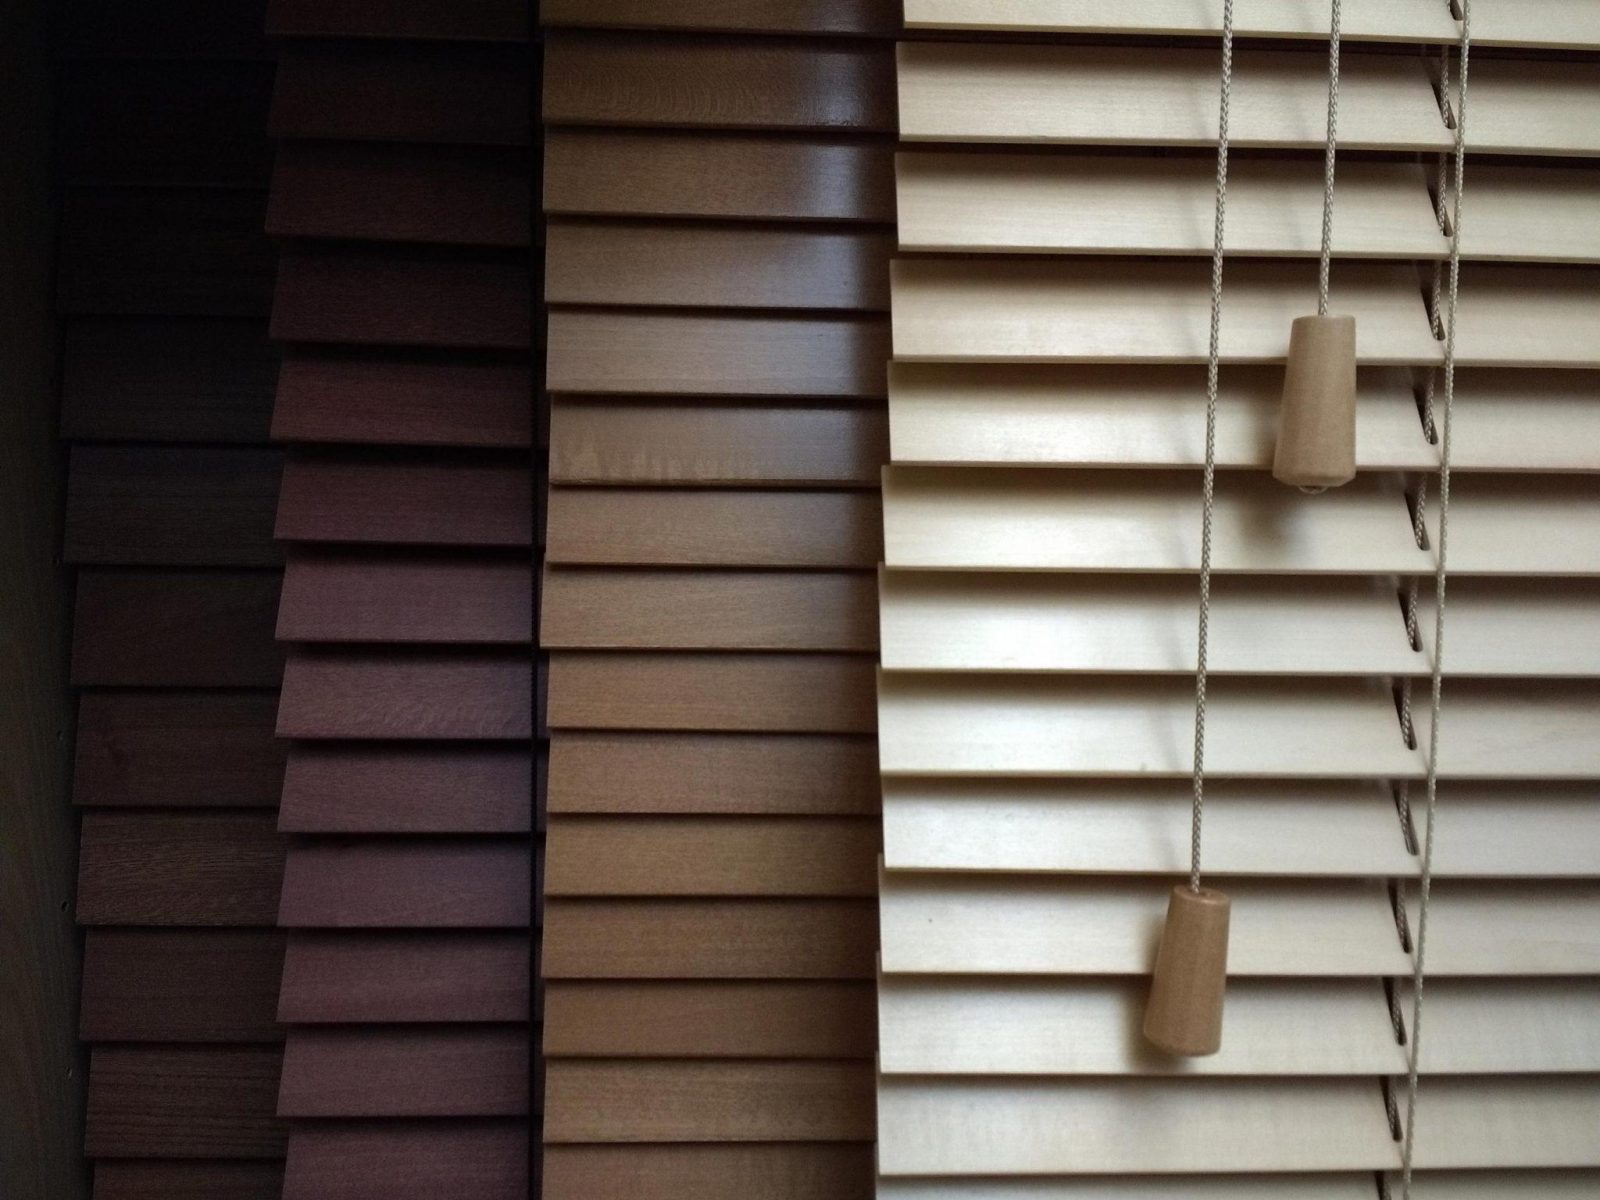 What are the eco-friendly benefits to using blinds and shutters?